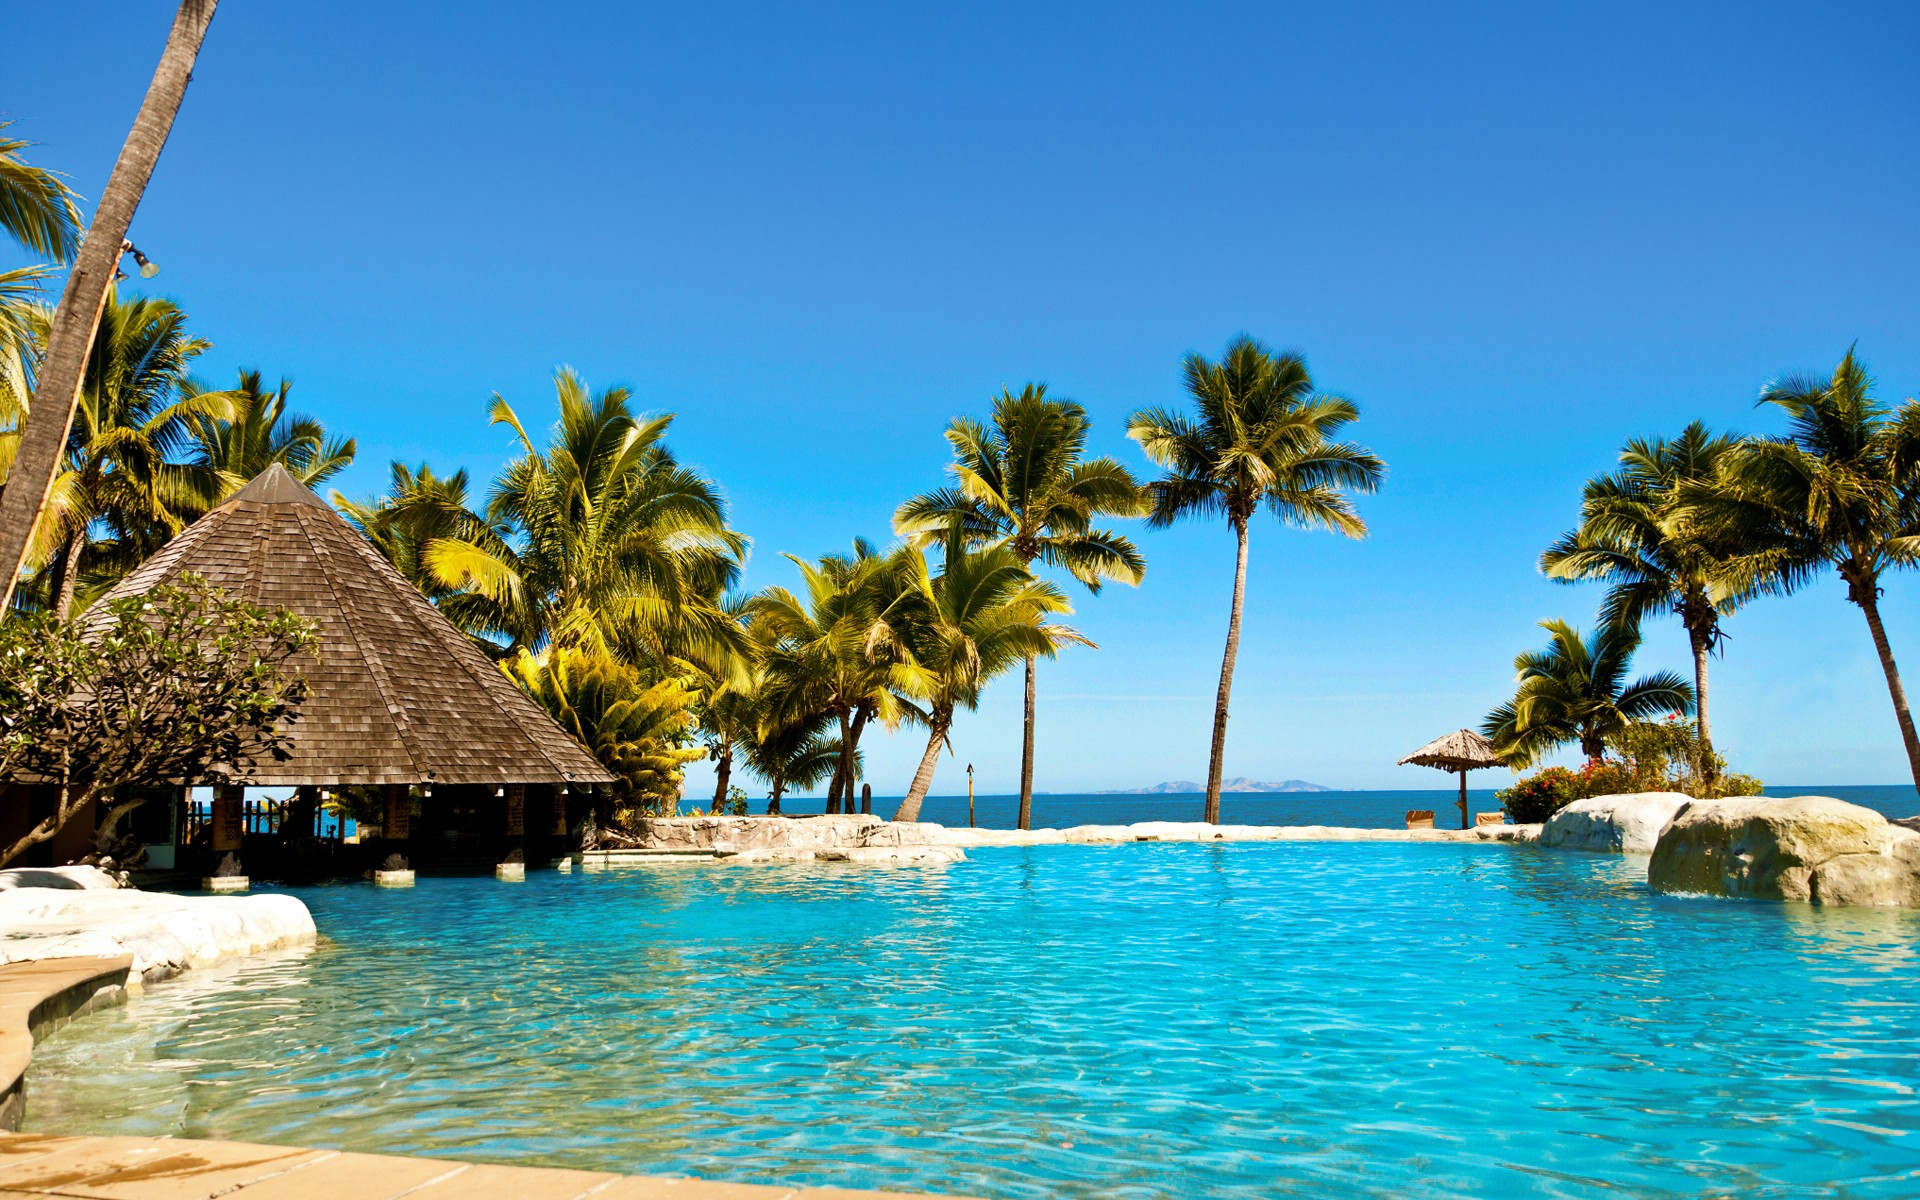 hotels Fiji islands resort relaxation sea beaches wallpaper background 1920x1200